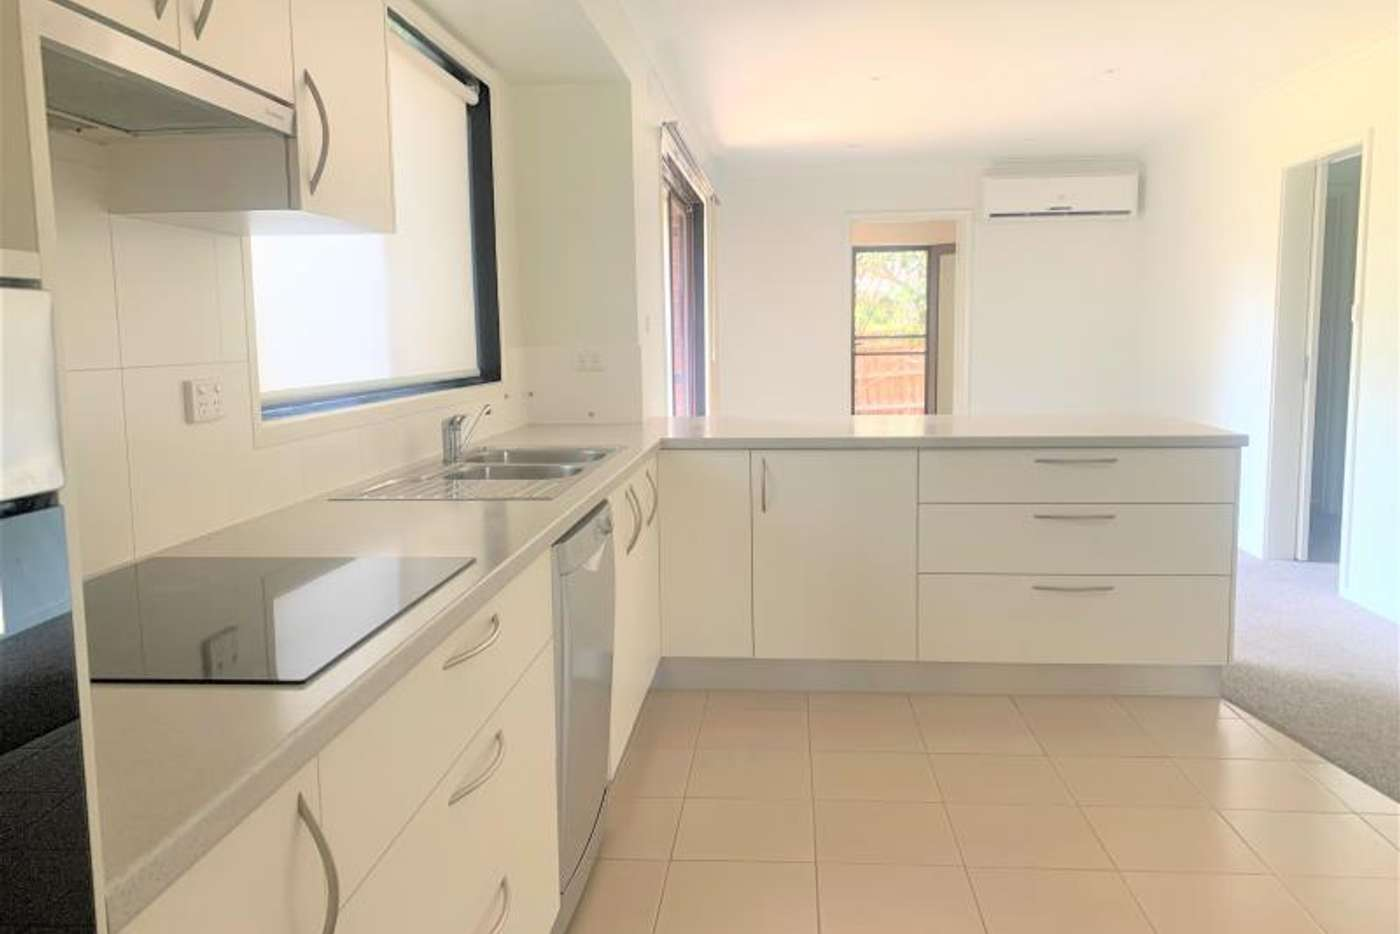 Main view of Homely house listing, 13 Wedge Court, Glen Waverley VIC 3150